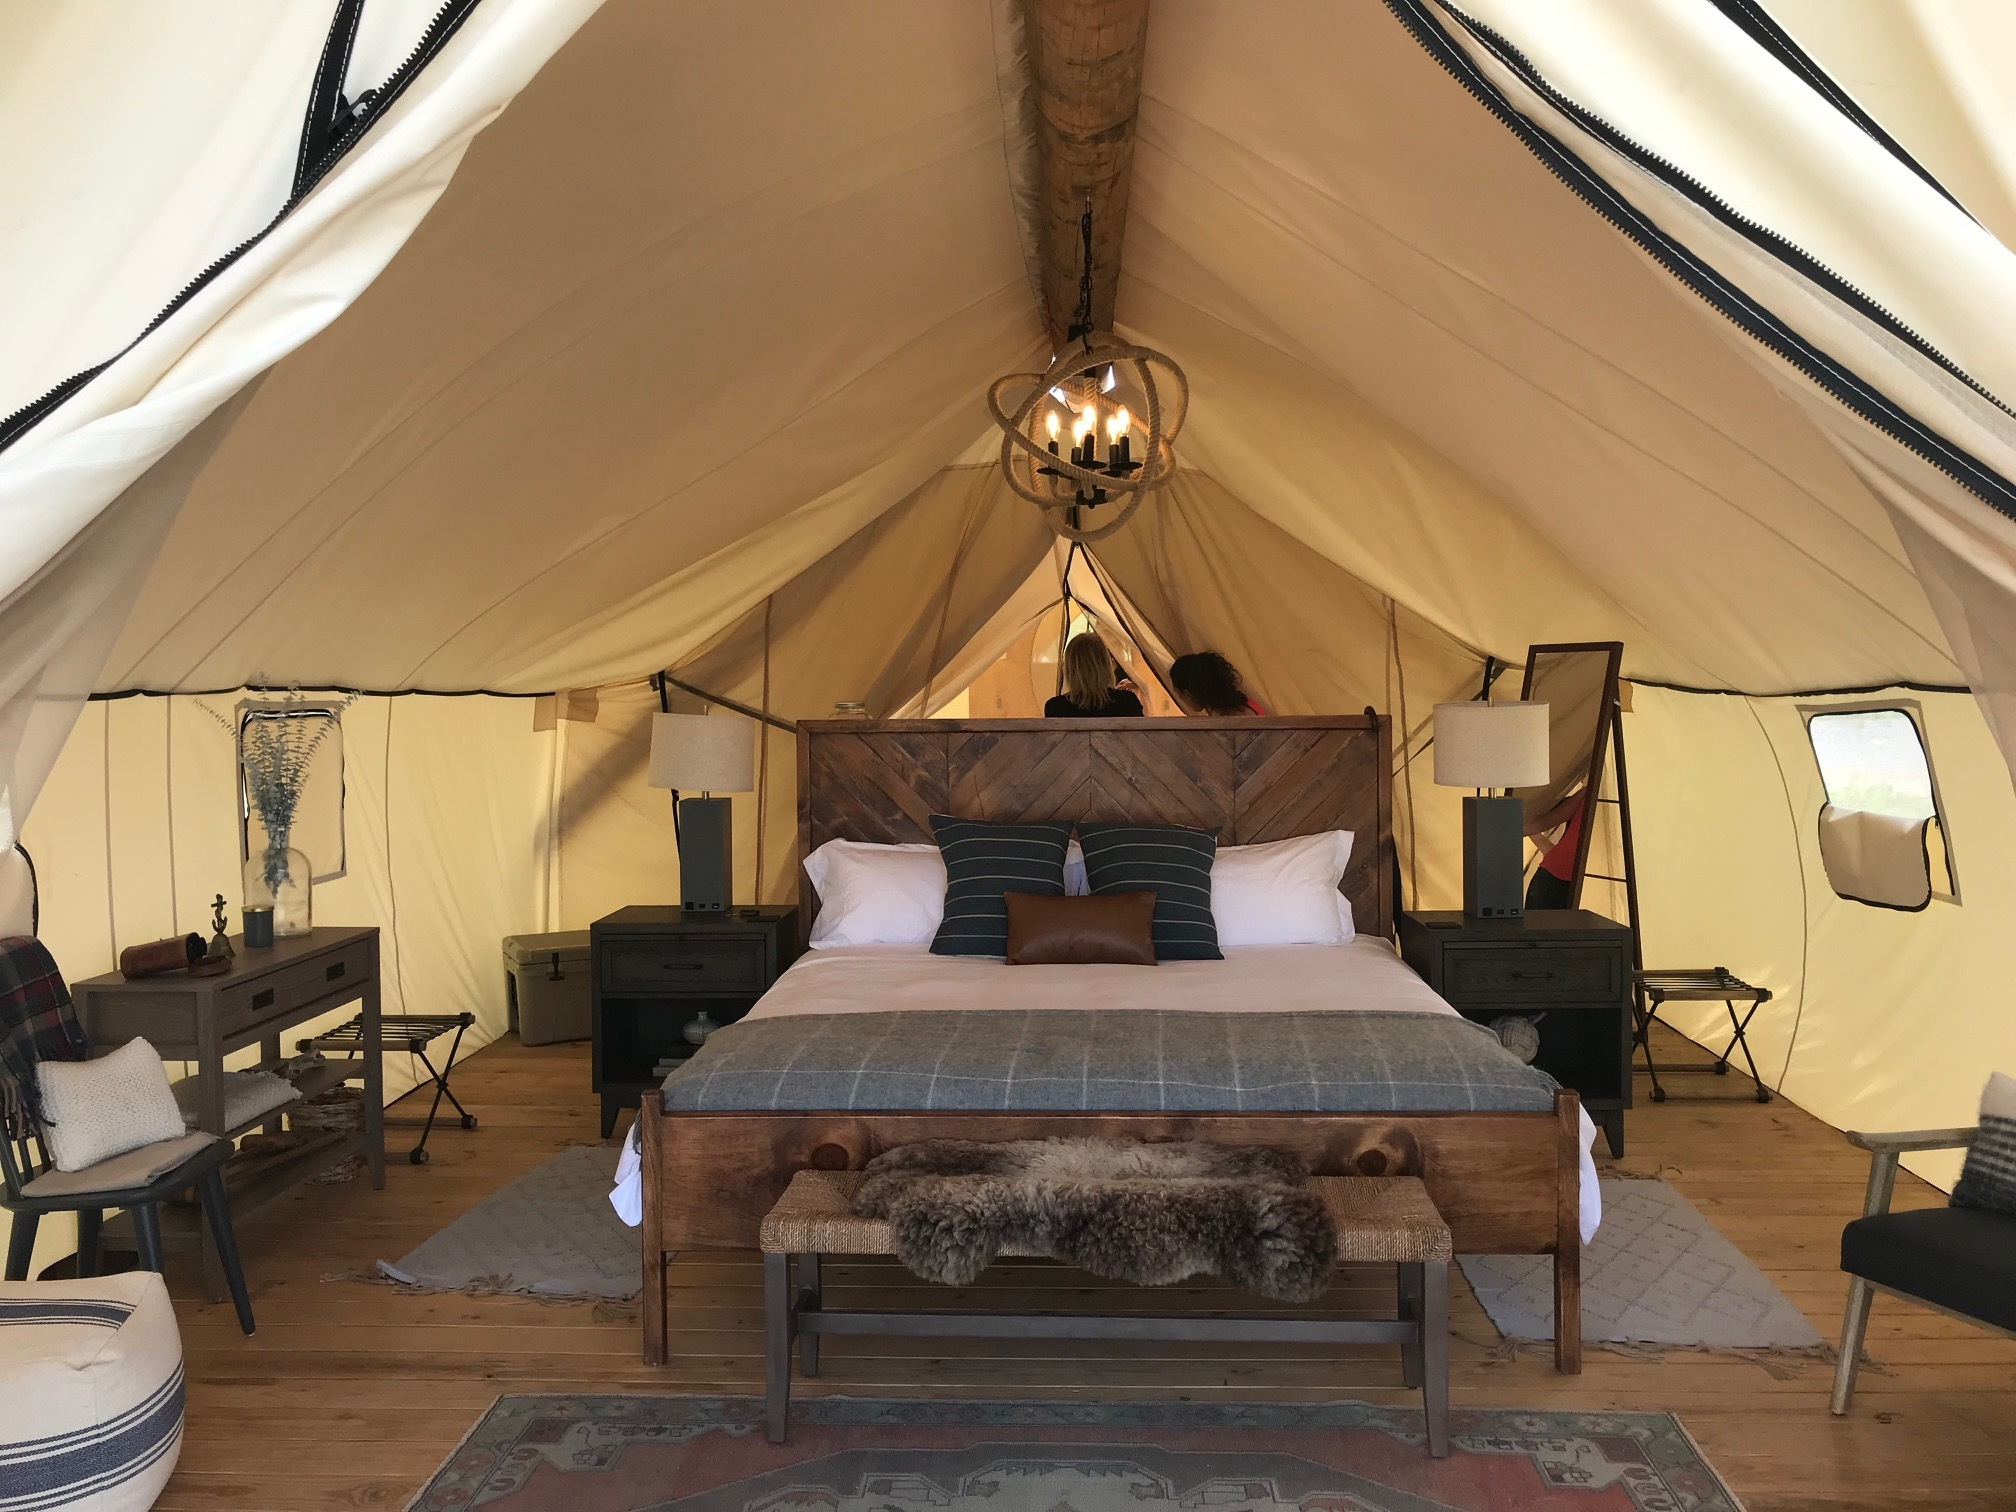 We answer all your questions about the new 'glamping' on